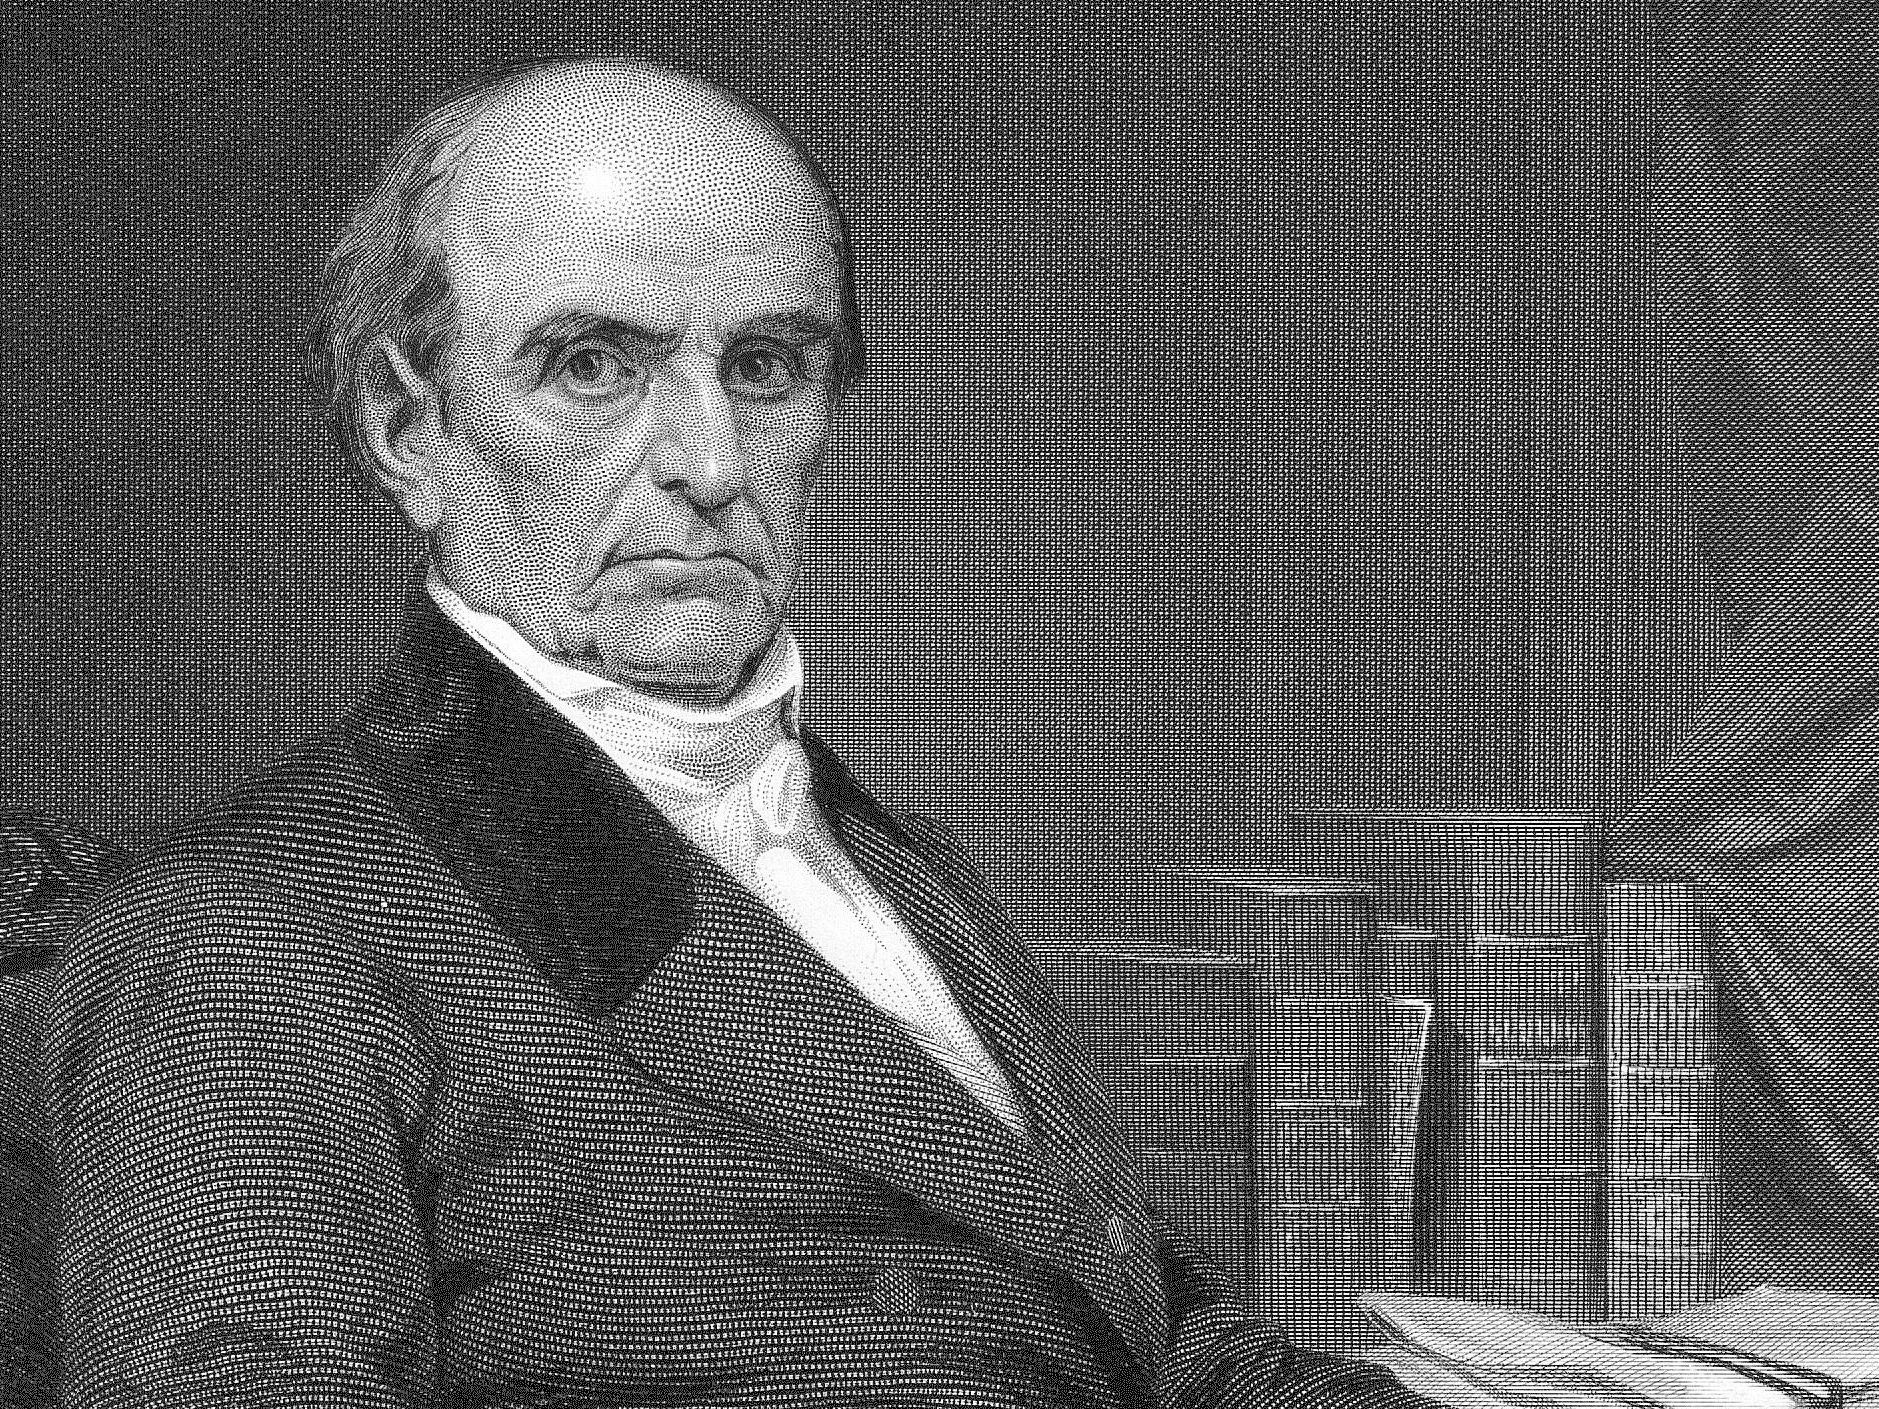 Photo of Alumni of IVY League colleges- Daniel Webster